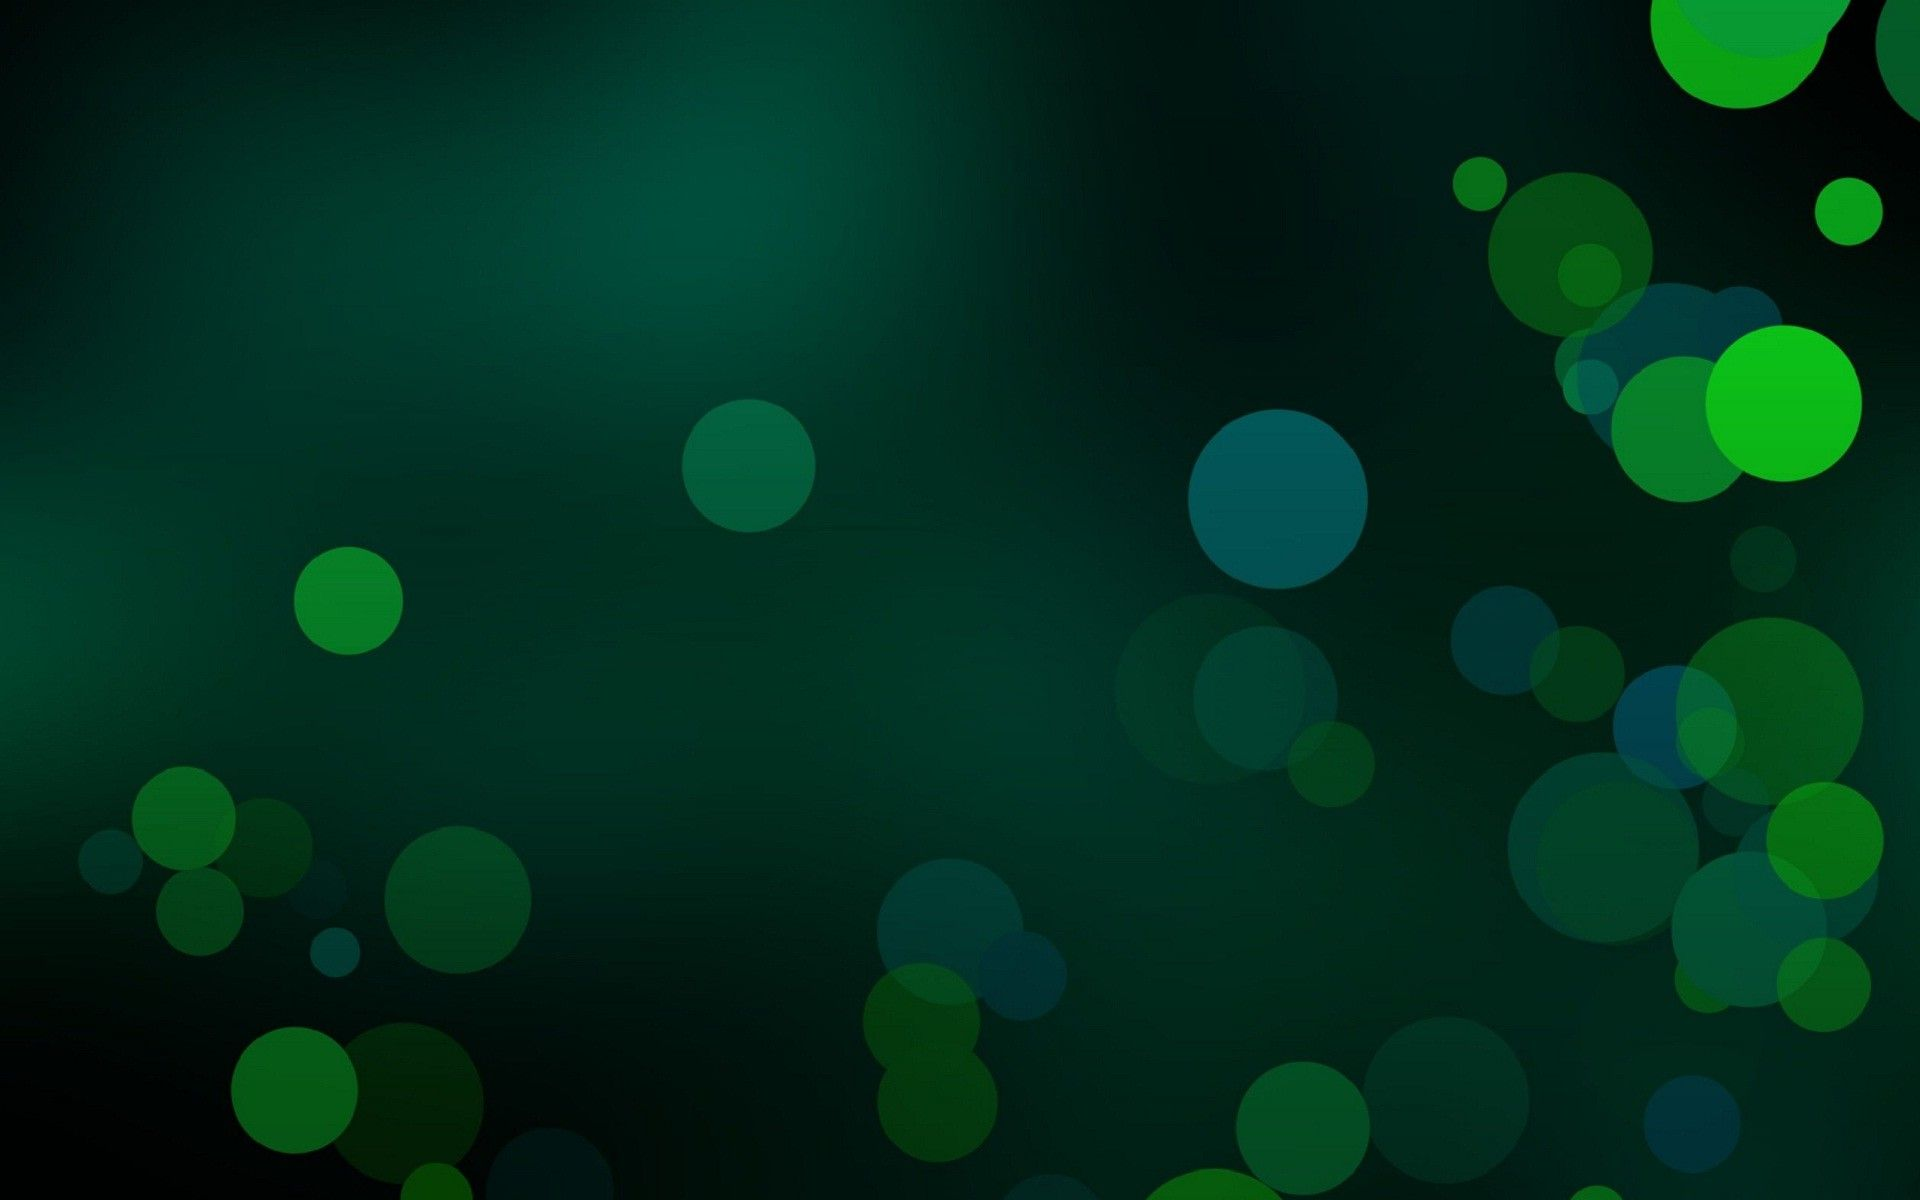 Wallpaper Dark Green Abstract Background